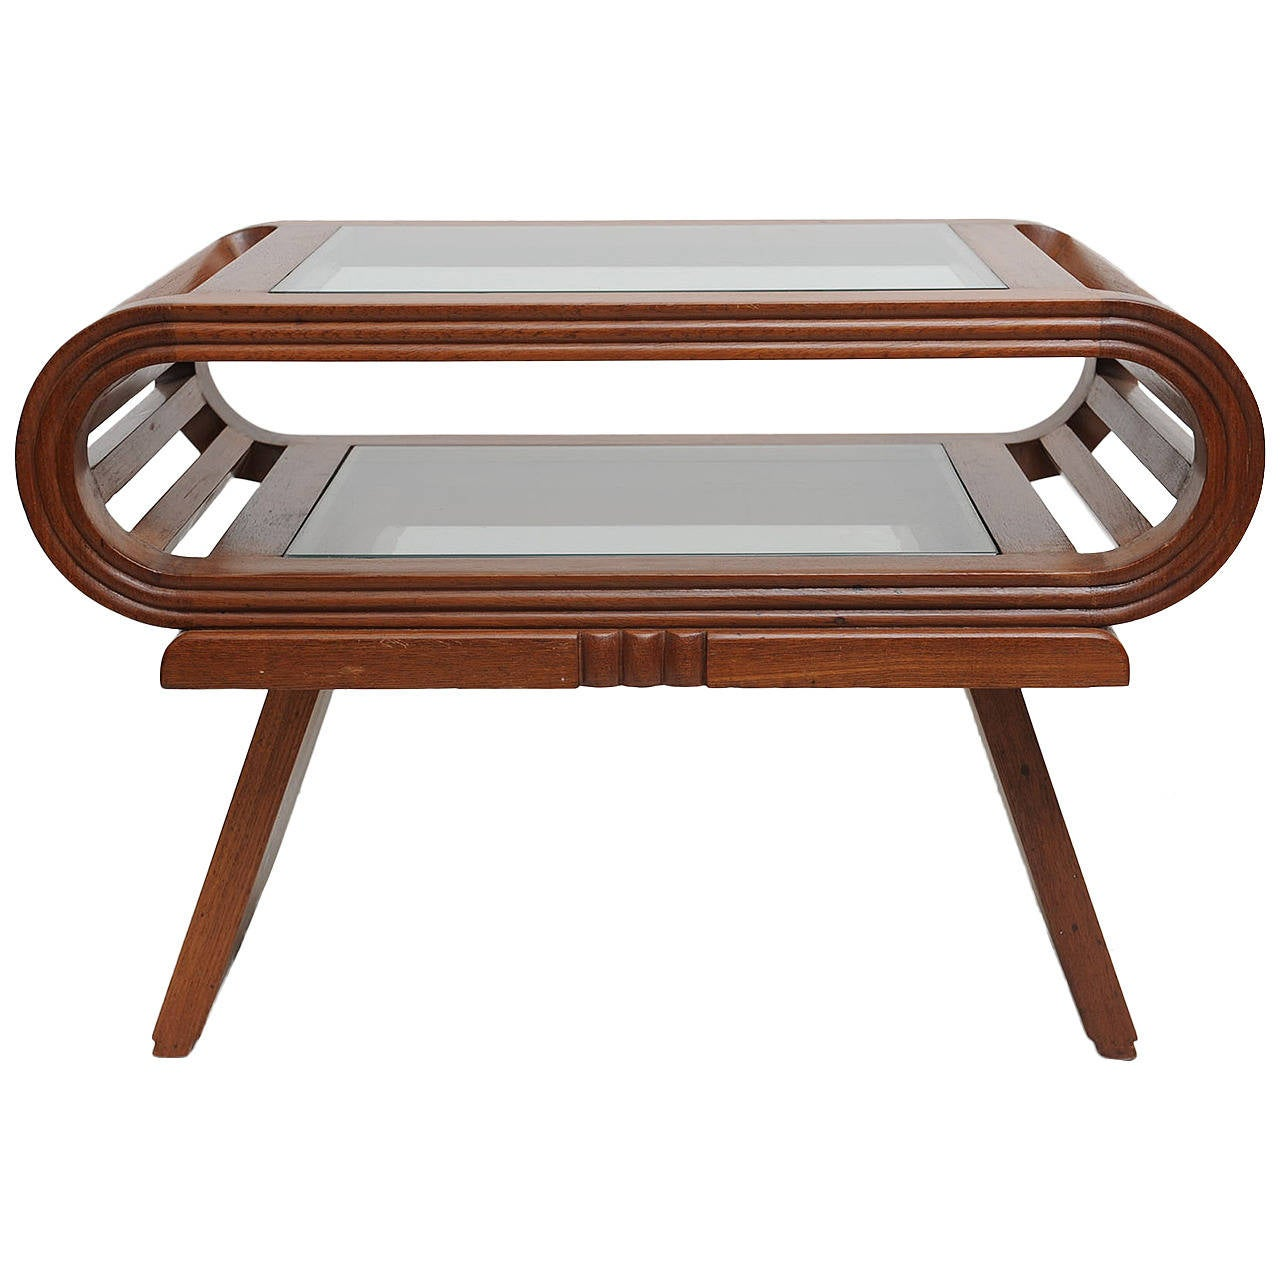 Deco Period Teak Coffee Table English At 1stdibs